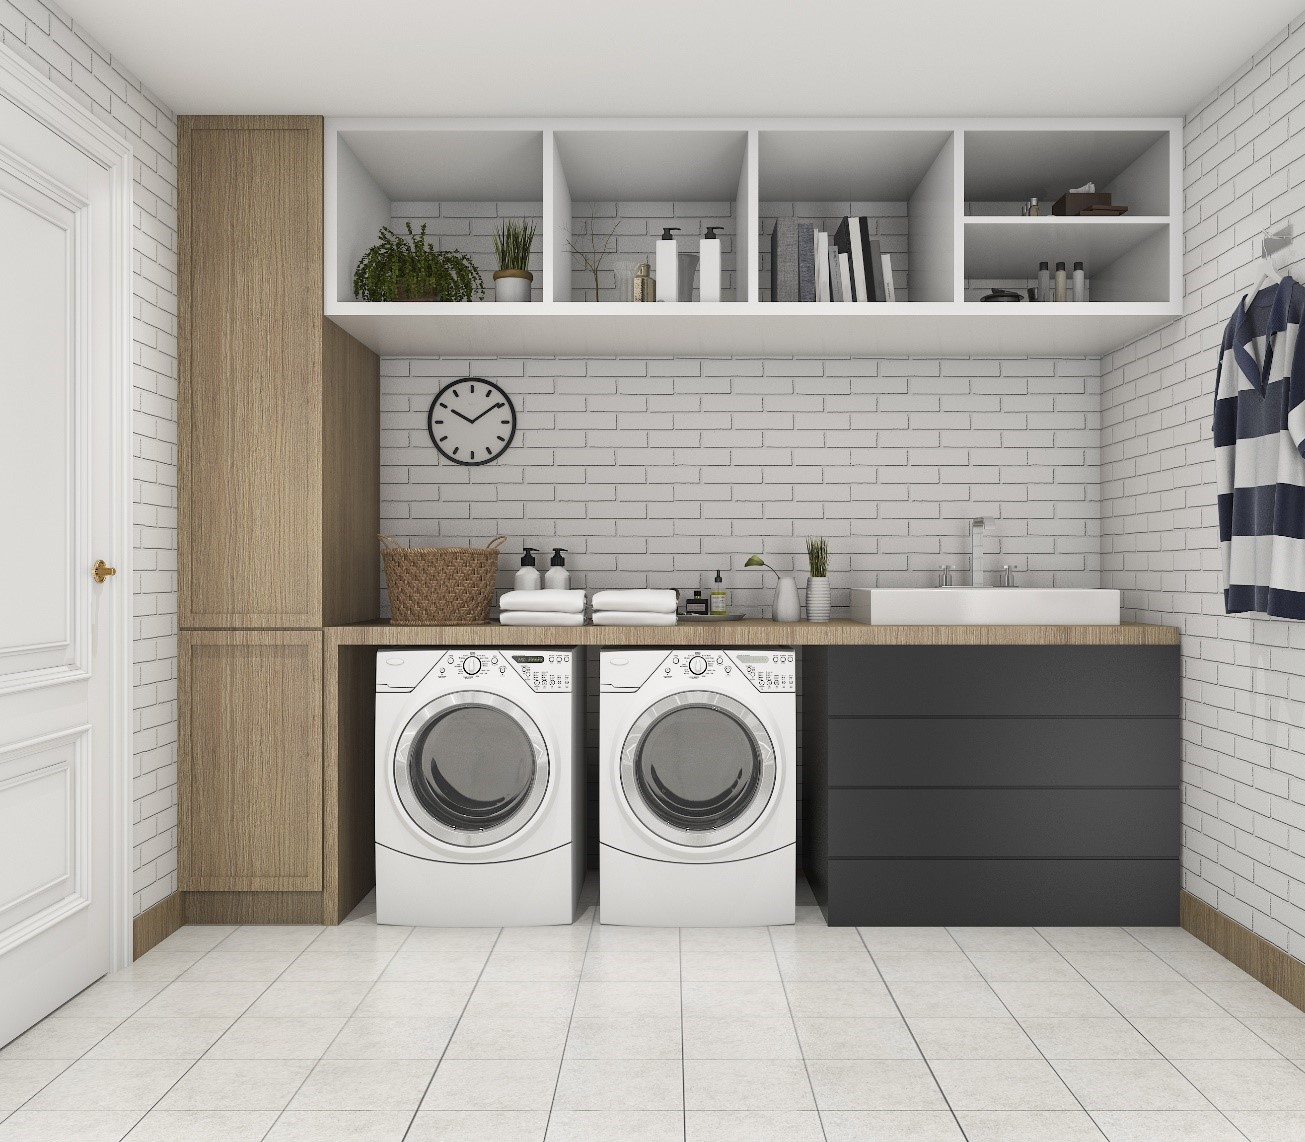 Laundry Storage Ideas | Lancaster | Red Rose Cabinets on Laundry Room Organization Ideas  id=61818